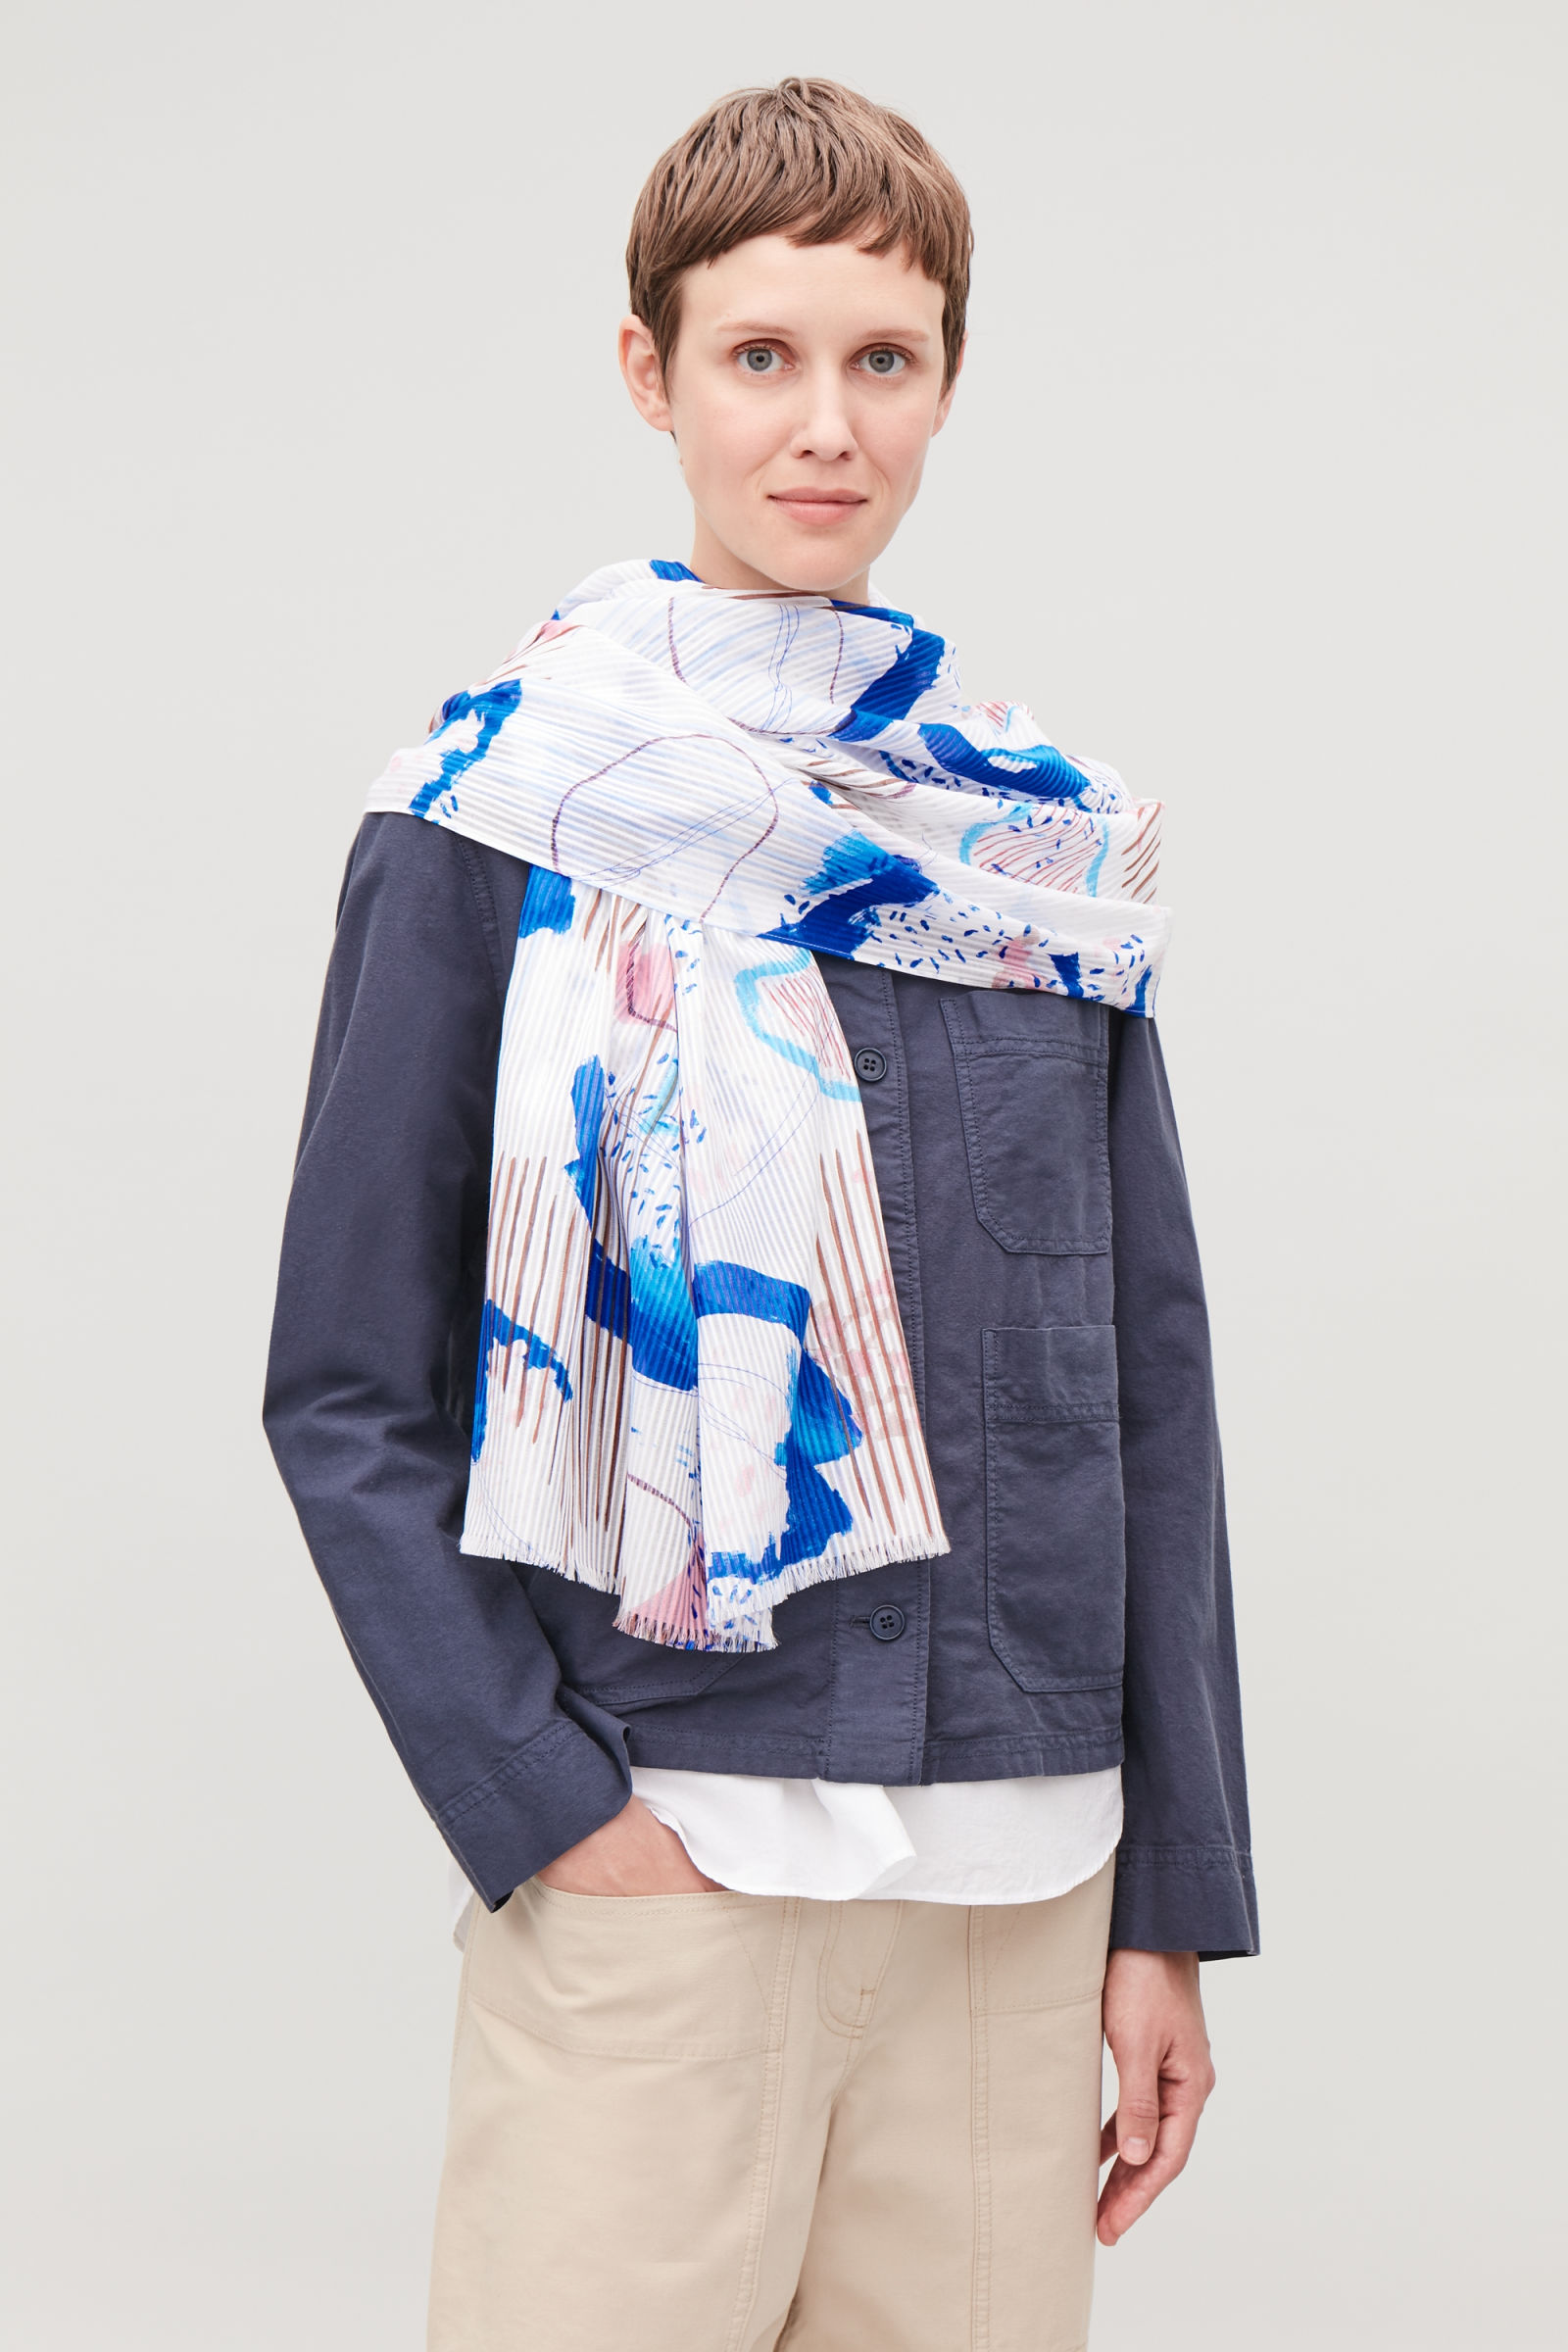 Cos Cotton Silk Scarf £45